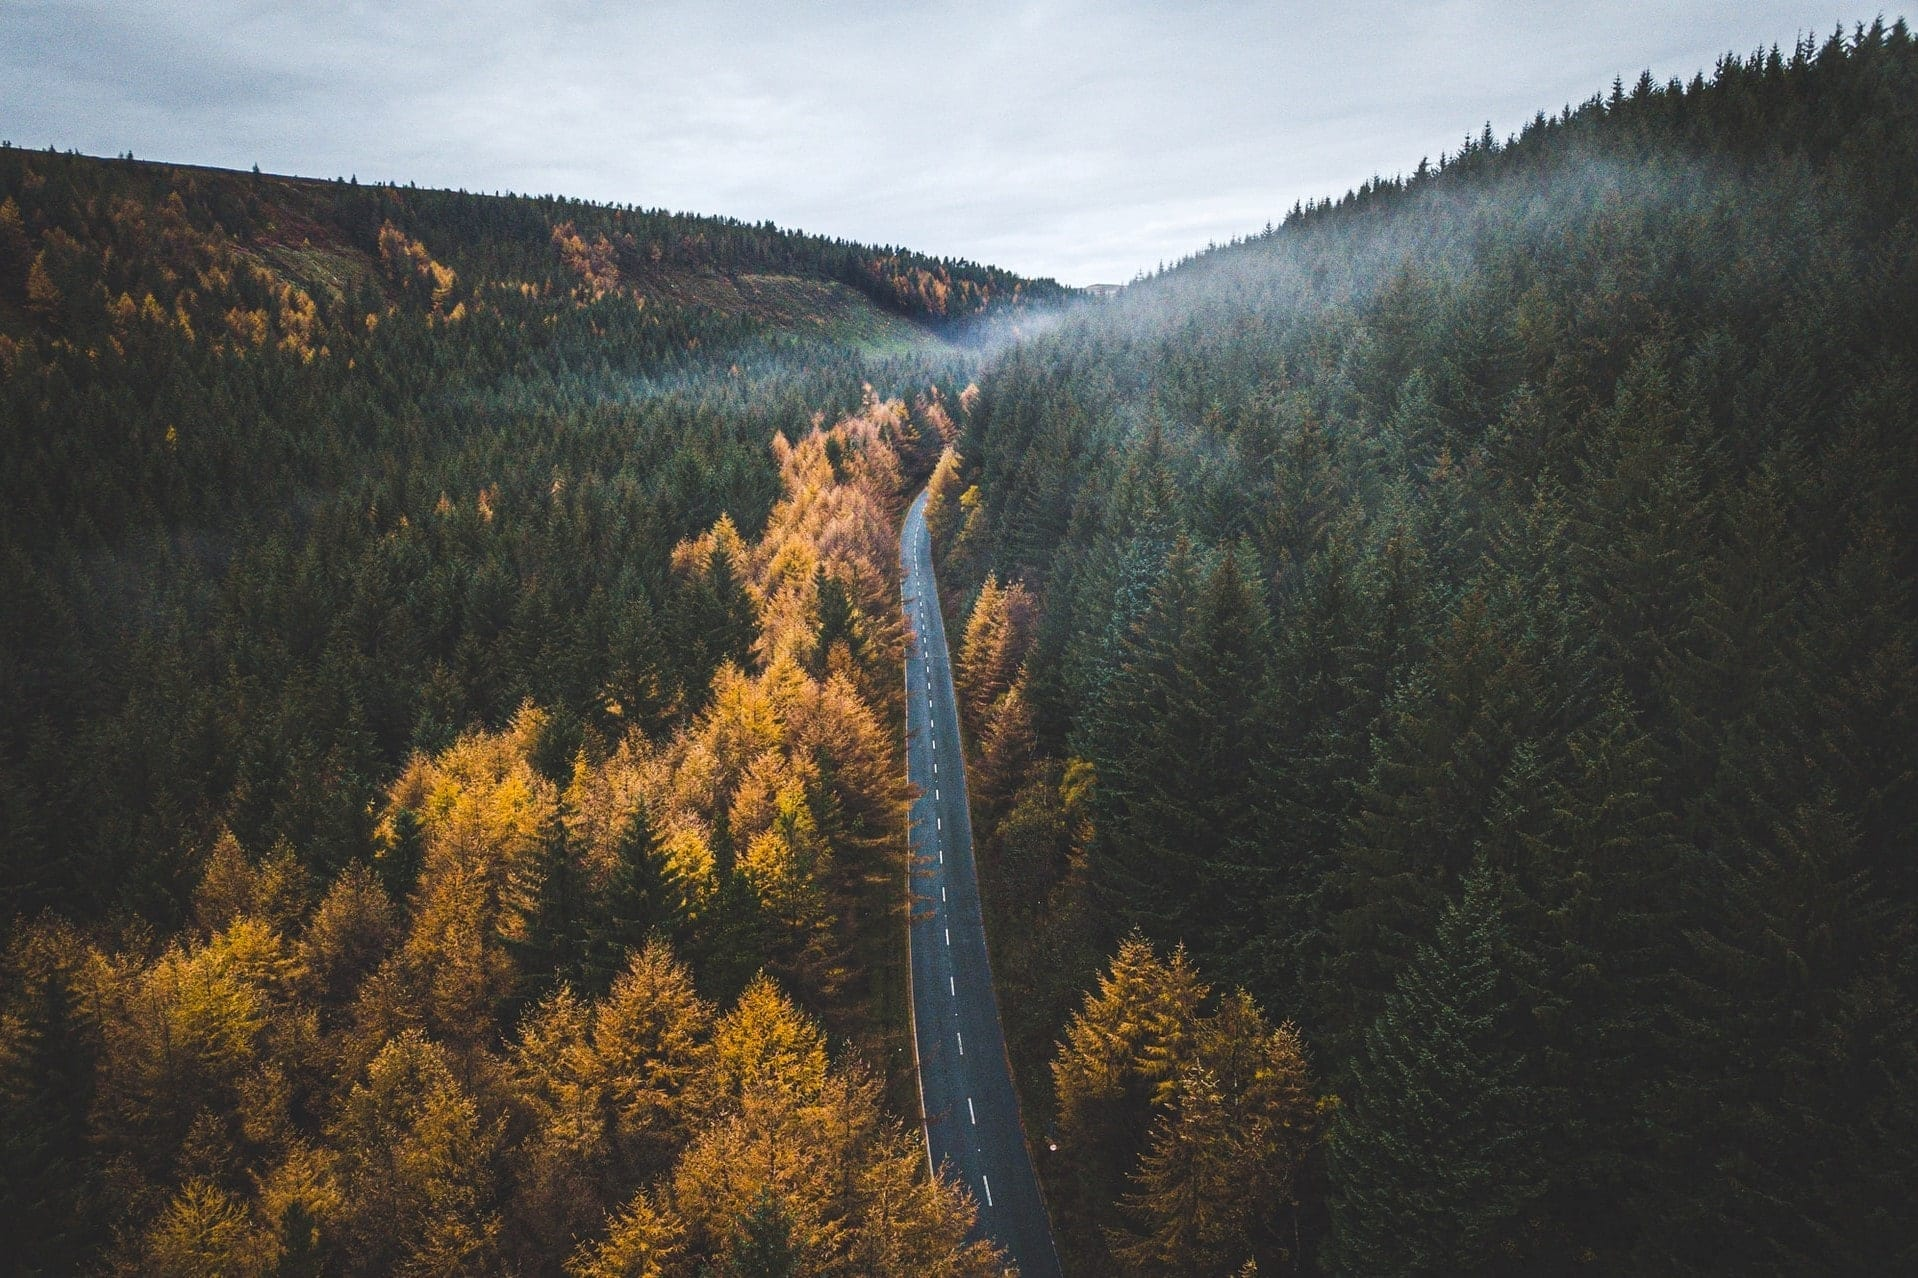 road-going-through-forest-in-autumn-from-above-snake-pass-peak-district-best-scenic-drives-in-uk